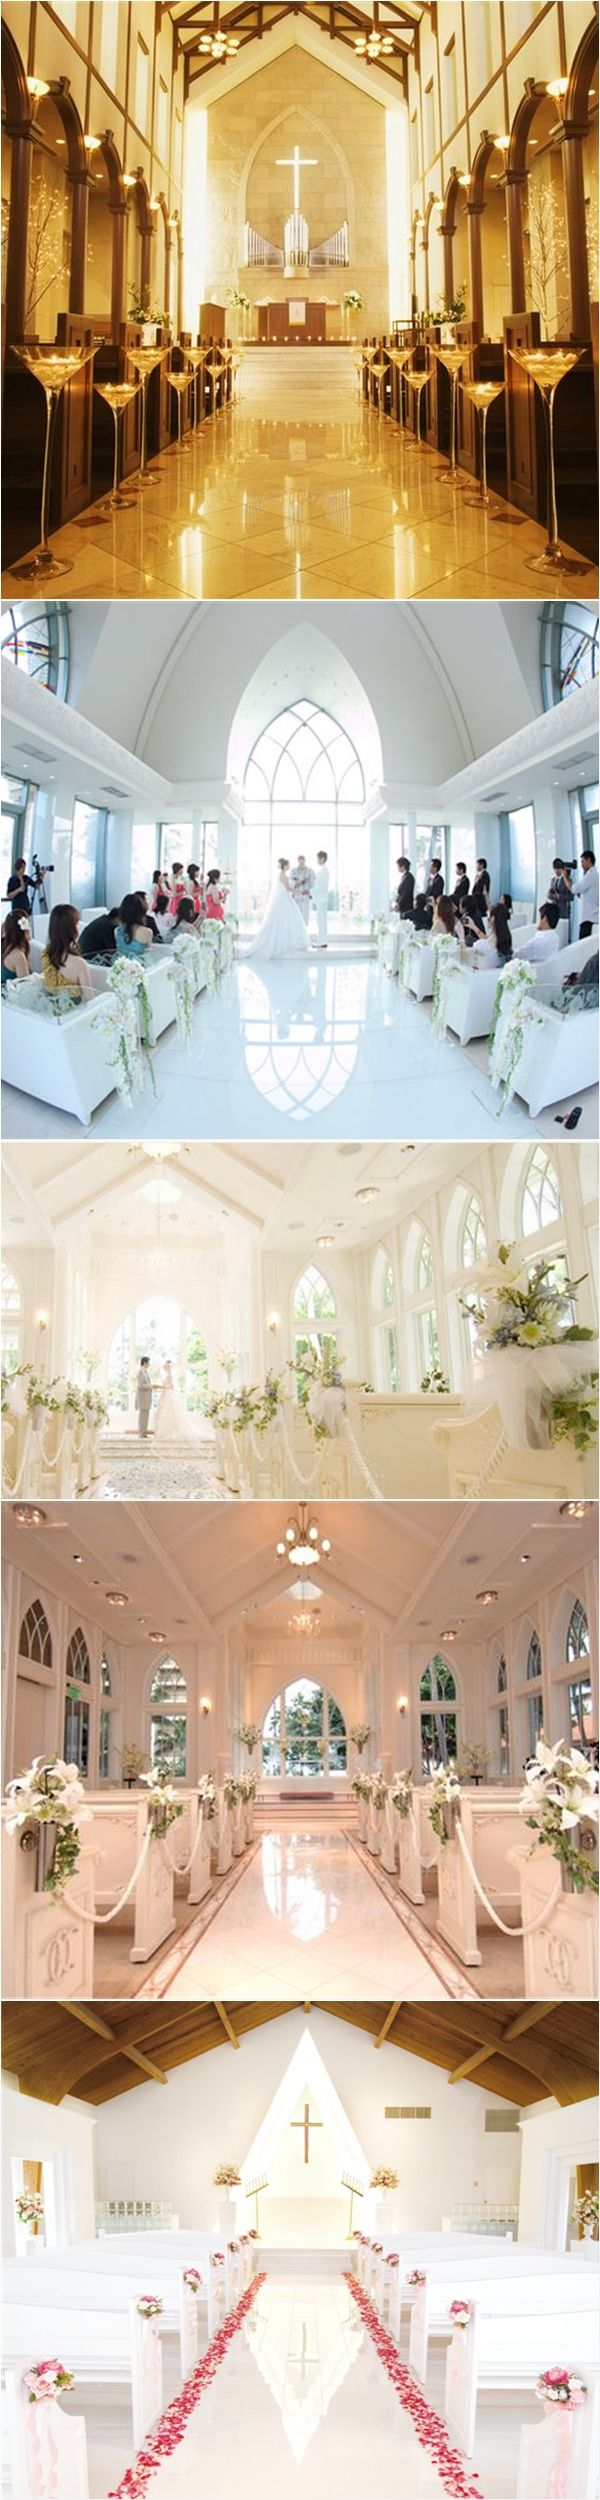 marketing plan of a wedding reception venue business With more brides taking their wedding planning online, the wedding industry is a   in this guide, we'll learn how online business owners in the wedding  some  wedding photographers, makeup artists, bakeries or venues.